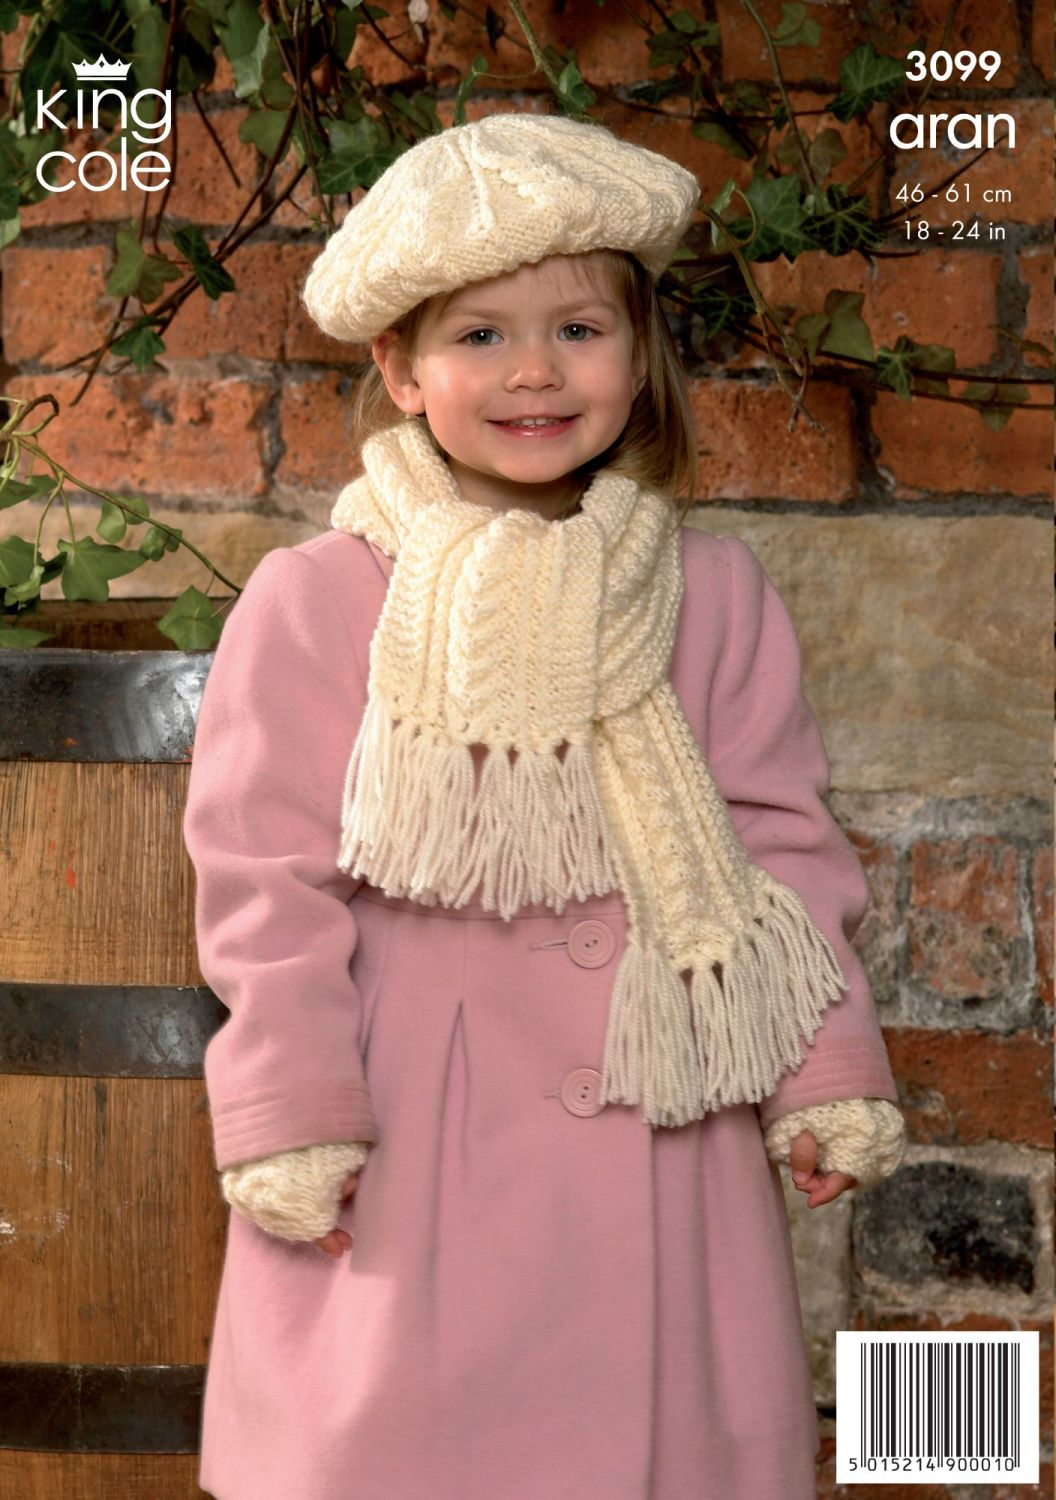 3099  Aran - Children's Knitting Pattern 18